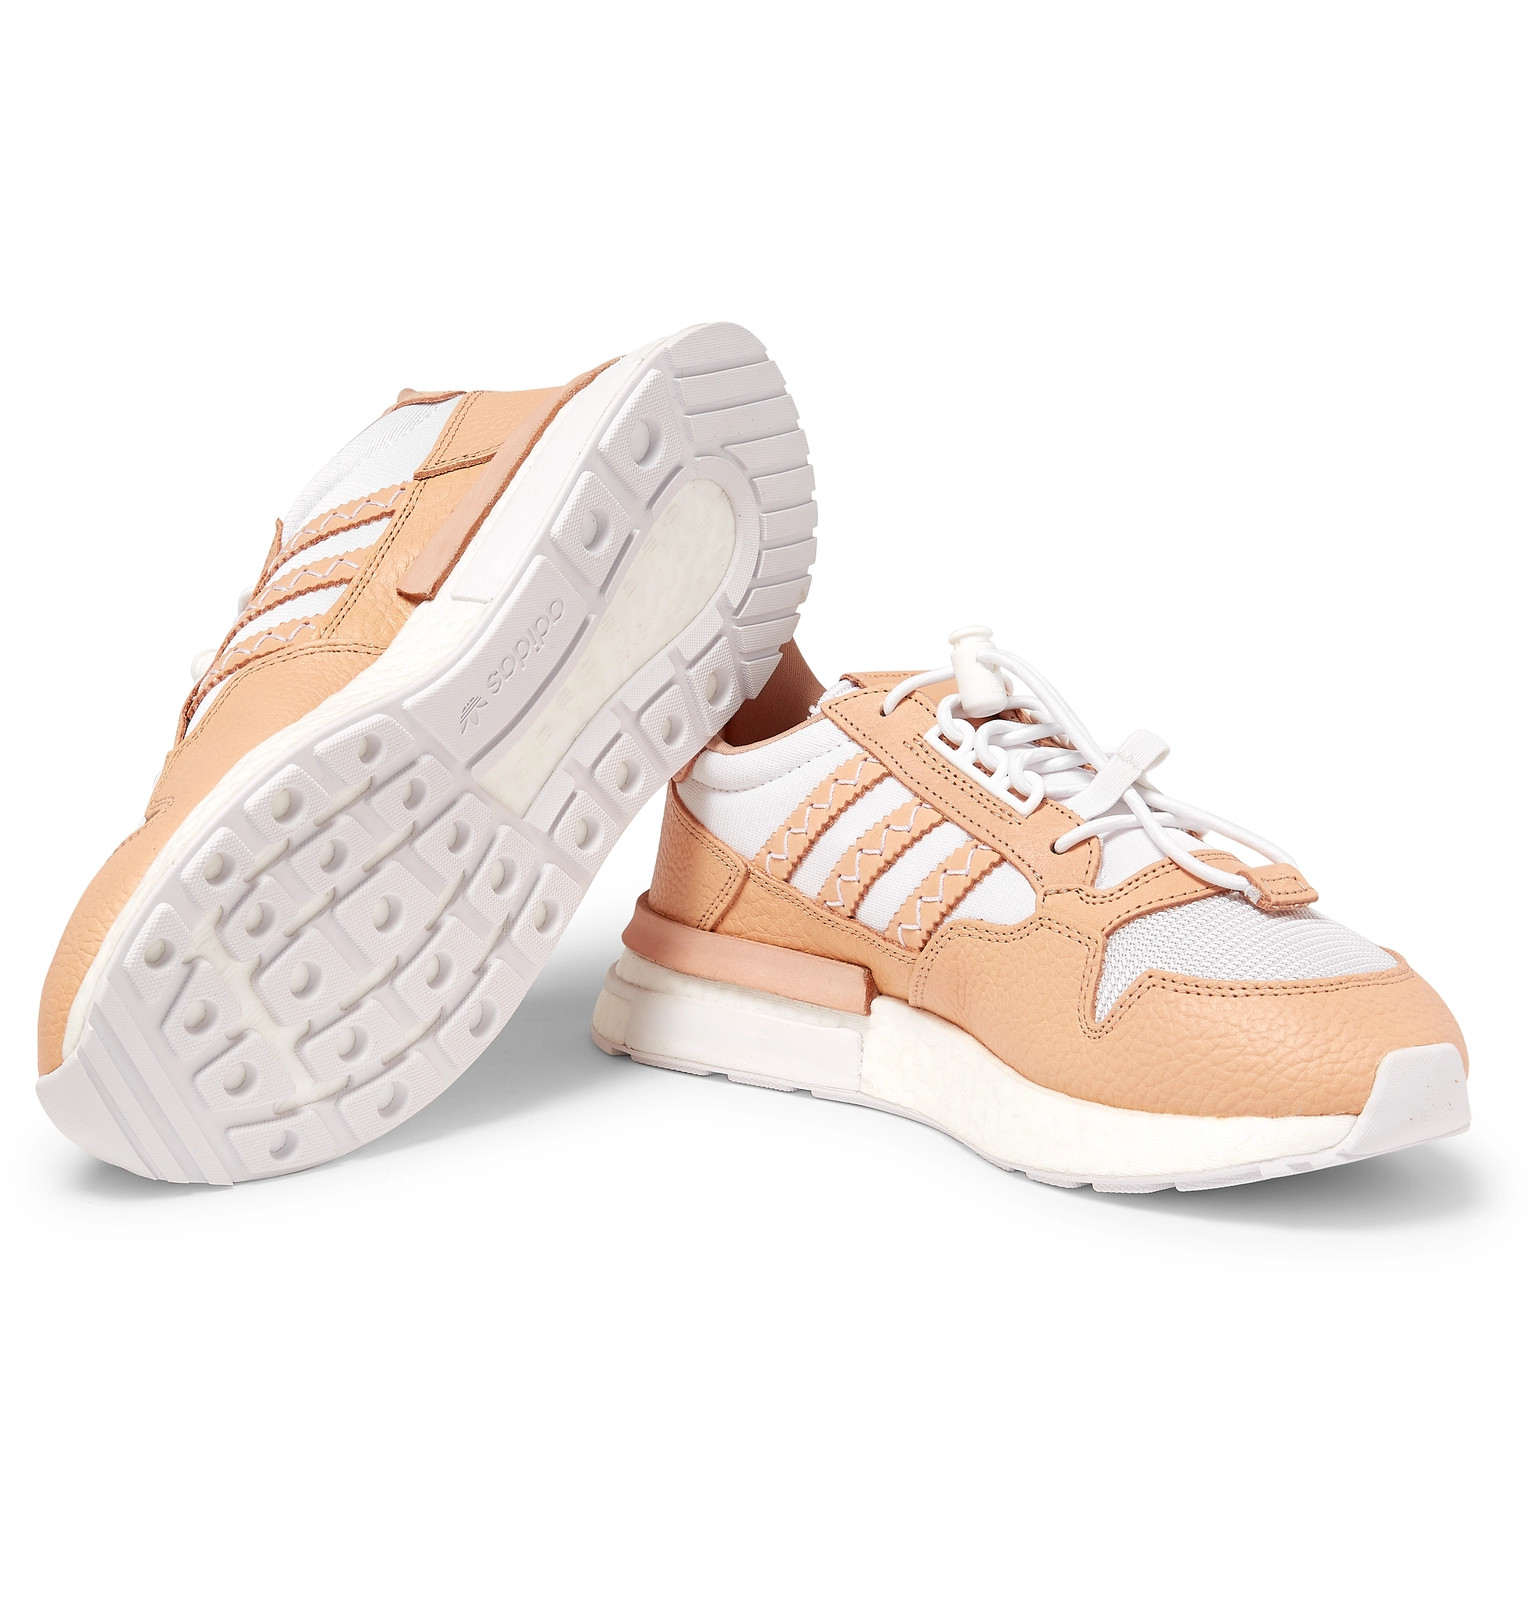 a49abff5bbaa1 adidas Consortium+ Hender Scheme ZX 500 RM MT Leather and Mesh Sneakers